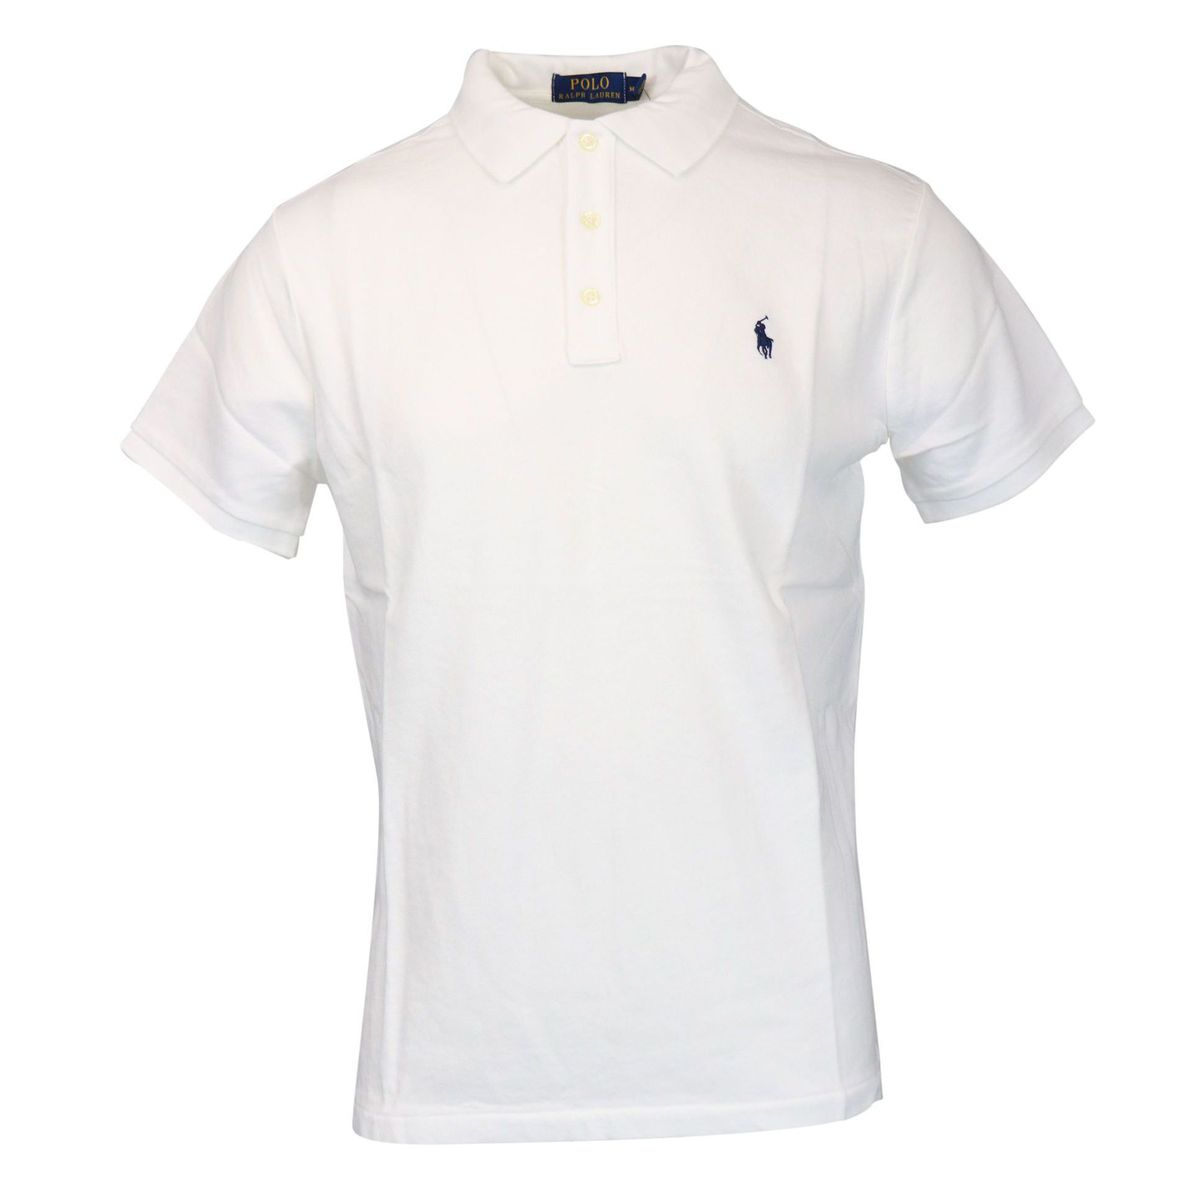 Three button cotton polo shirt with contrasting logo embroidery White Polo Ralph Lauren